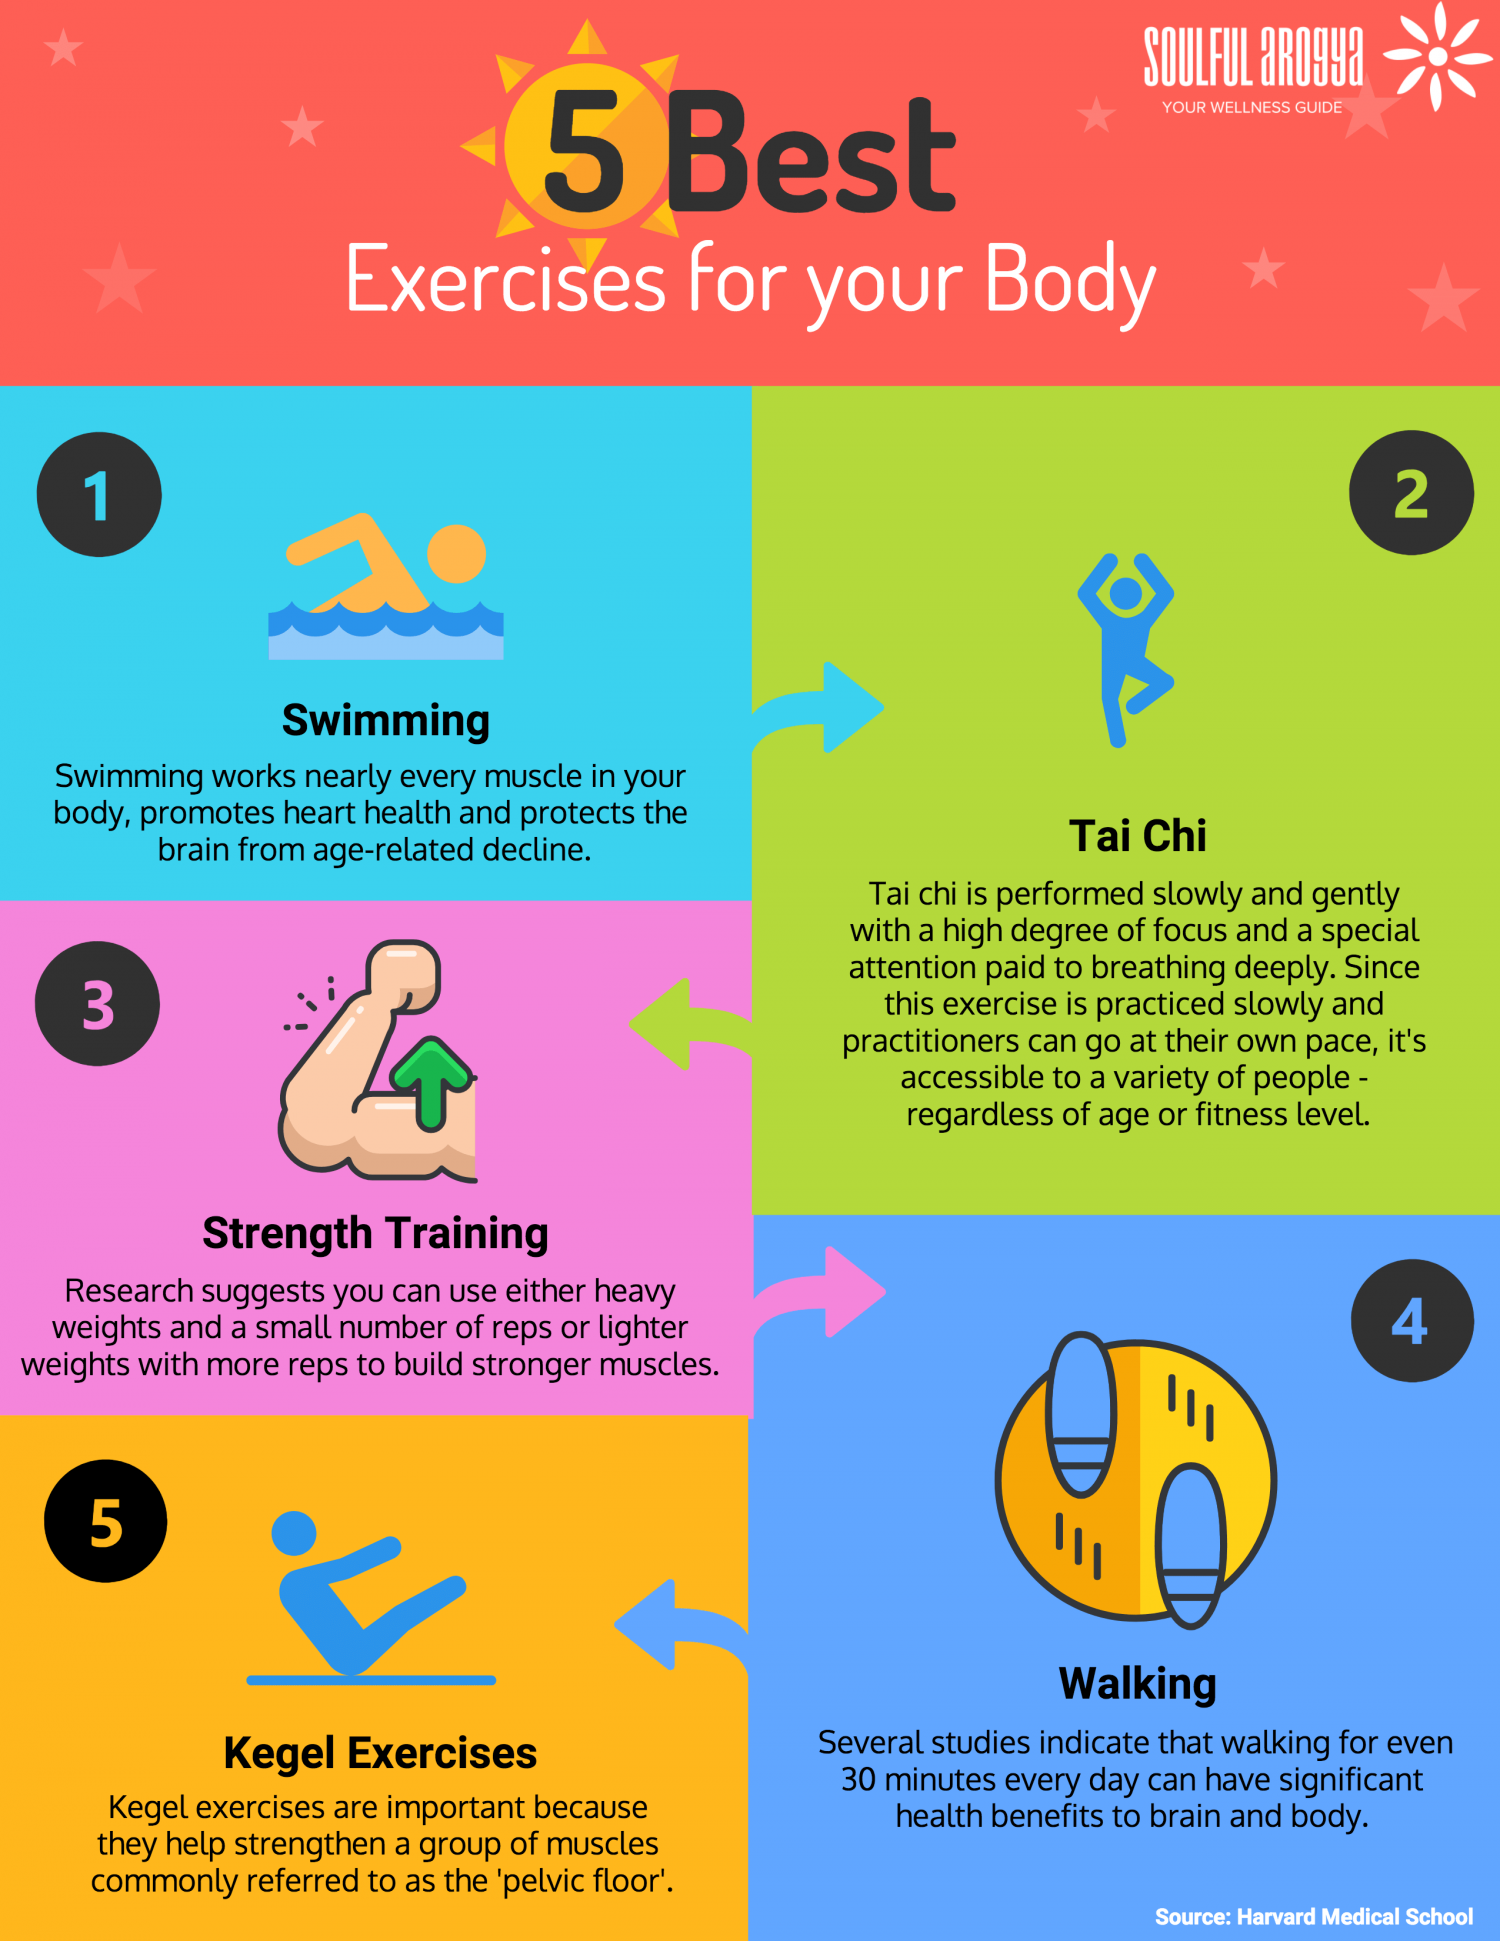 5 Best Exercises Infographic